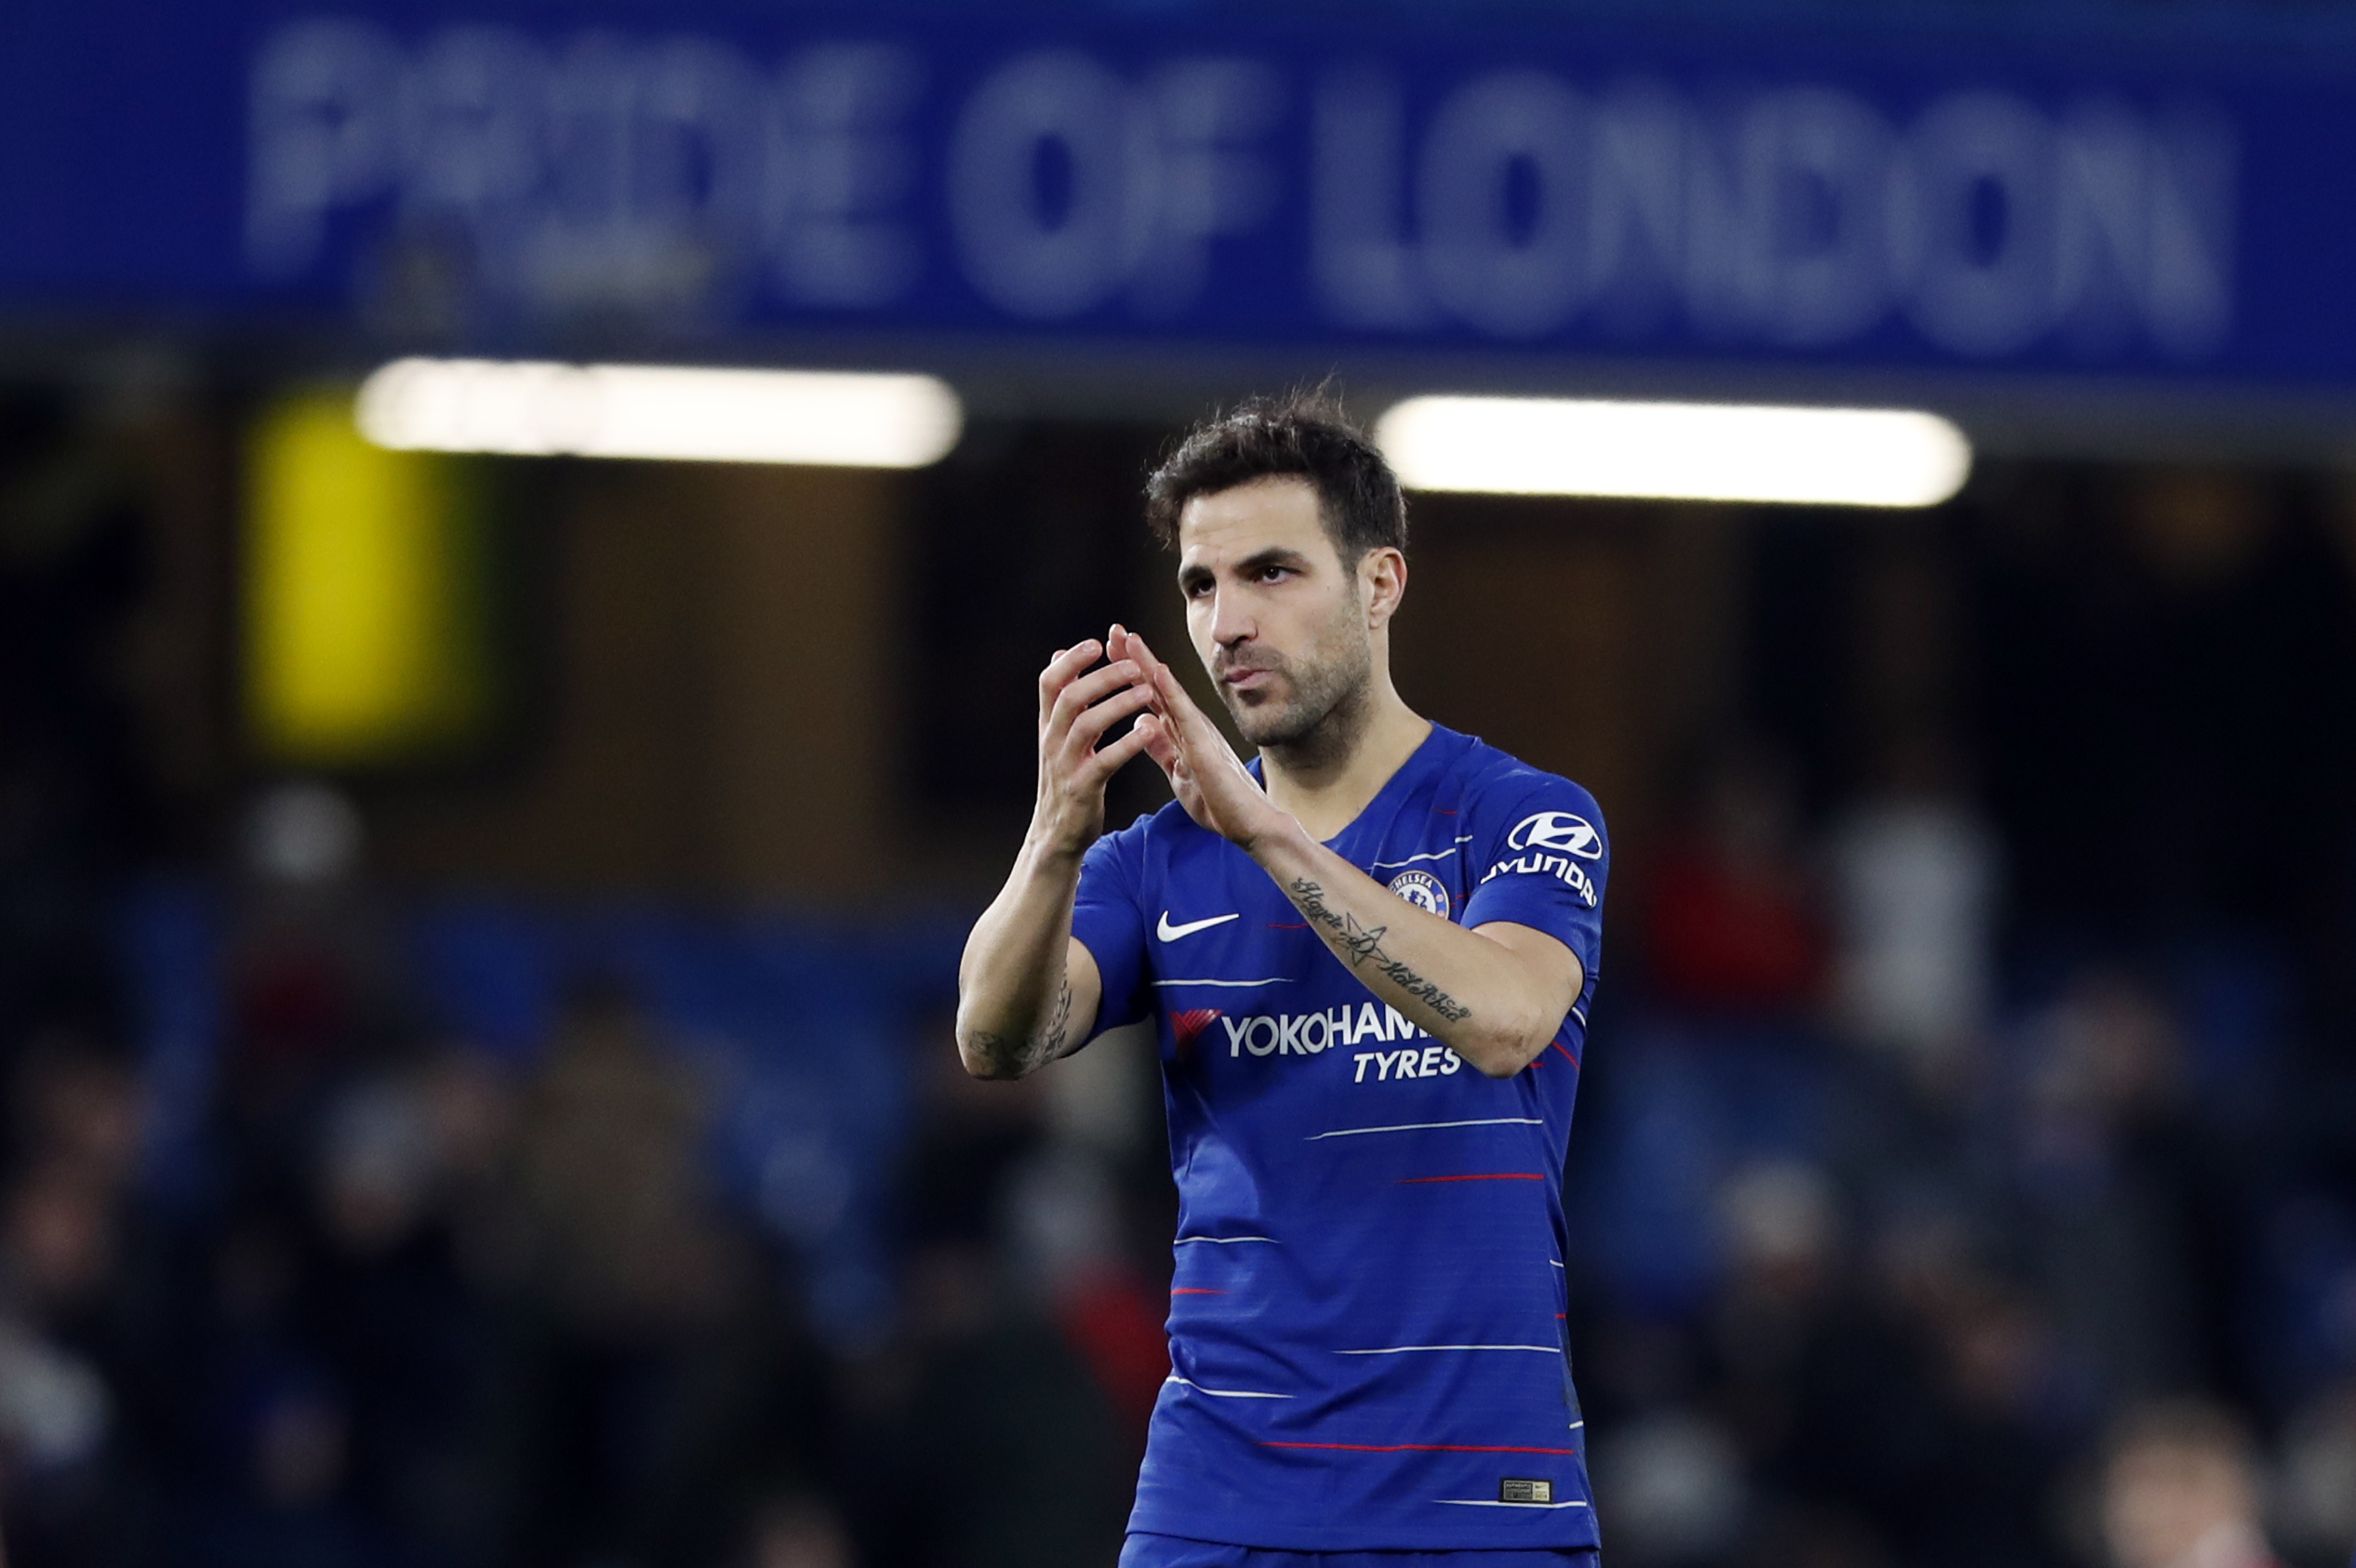 Fabregas says goodbyes as Chelsea advances in FA Cup